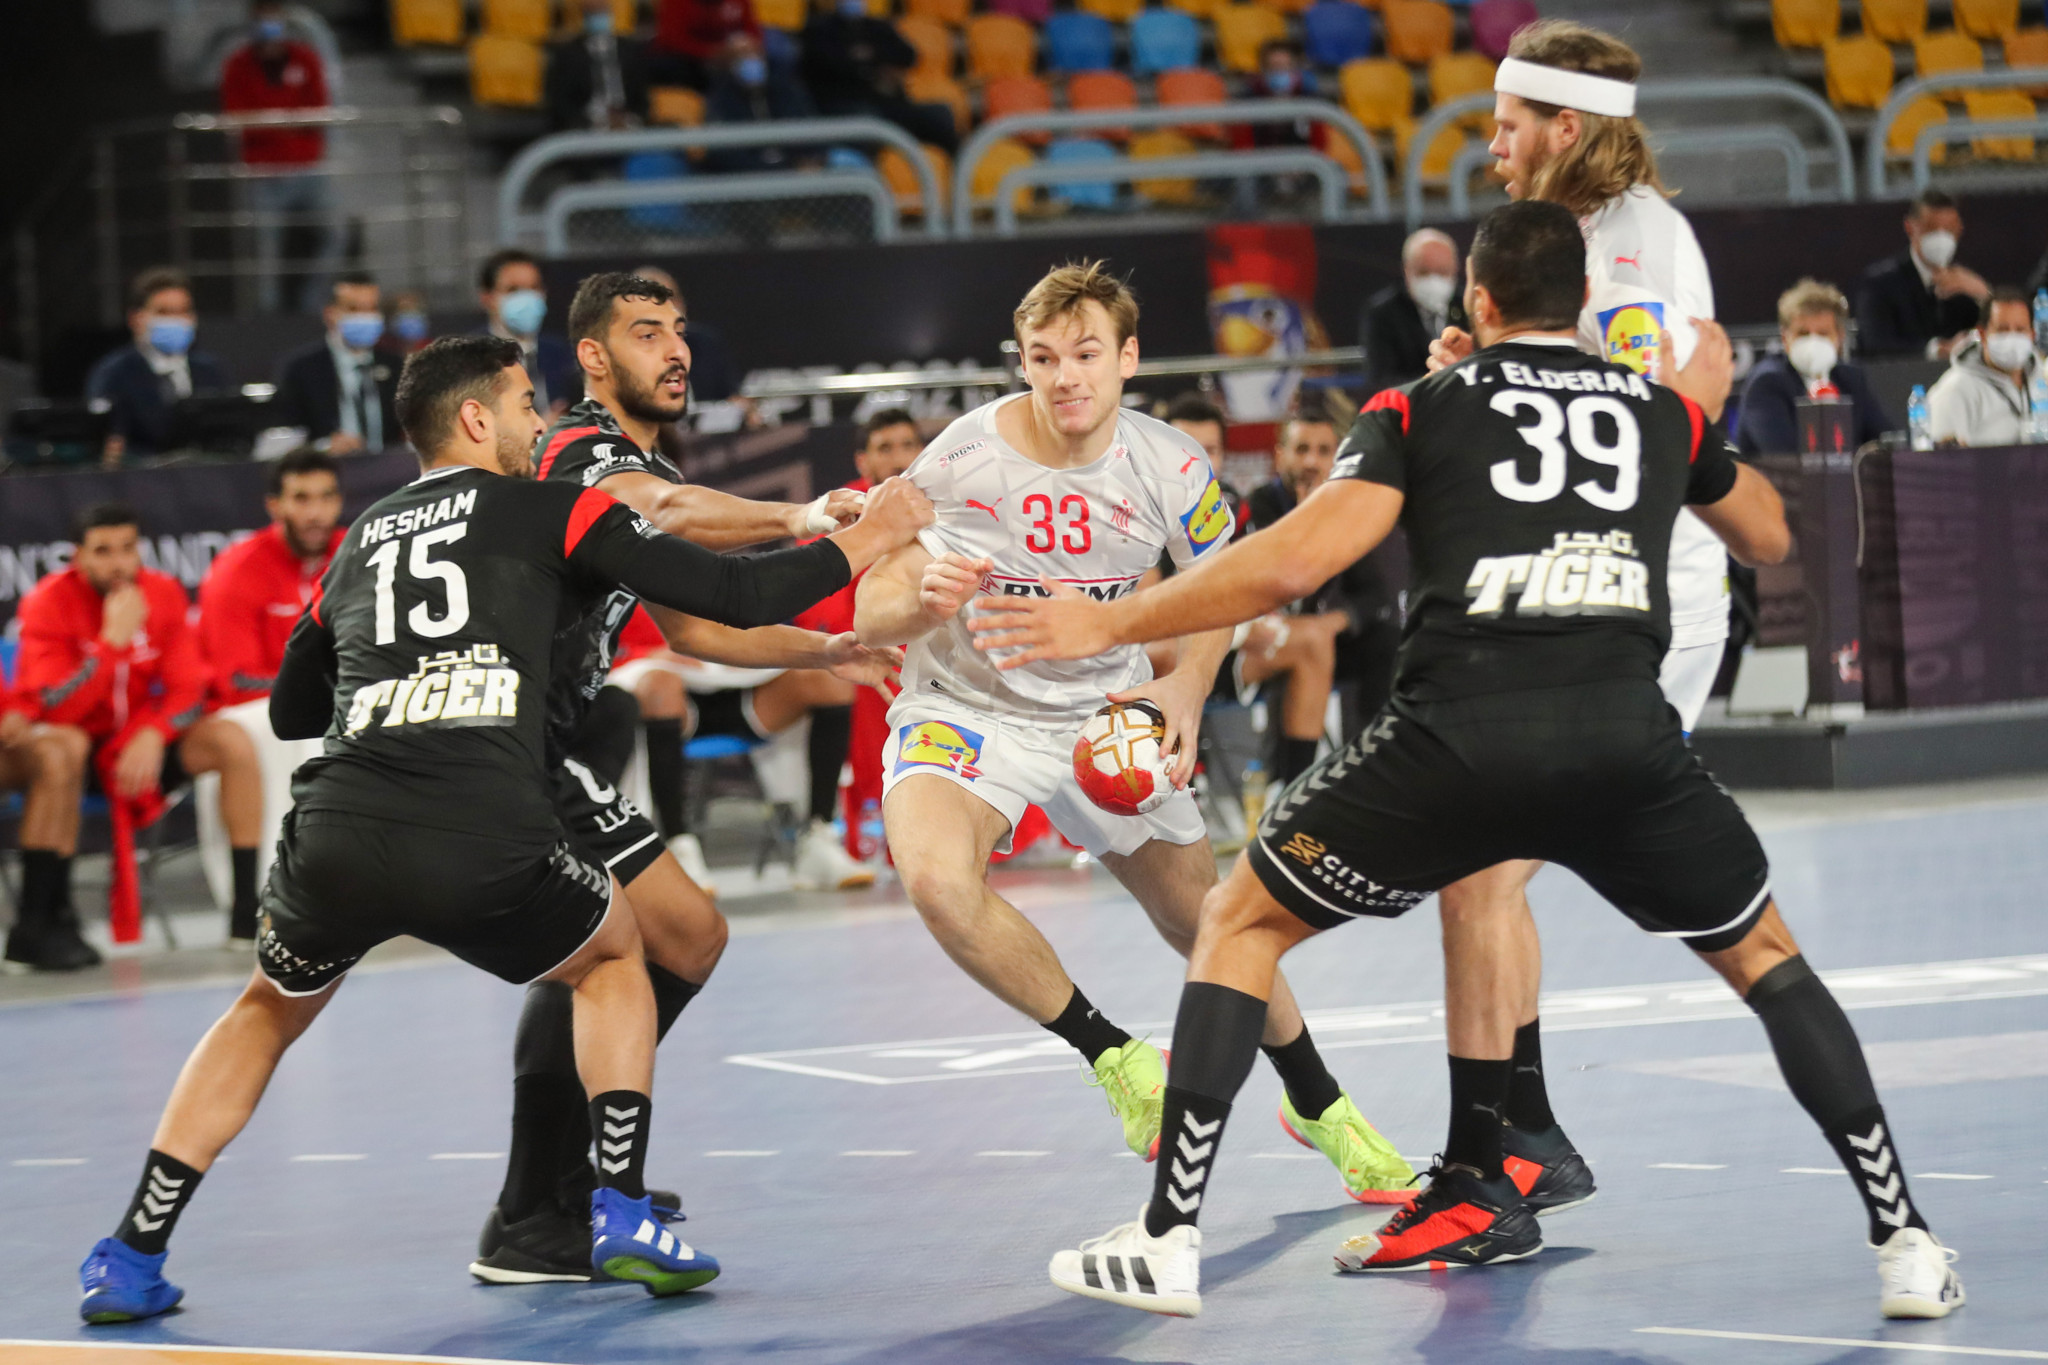 Defending champions edge out hosts as semi-final line-up confirmed for World Men's Handball Championship